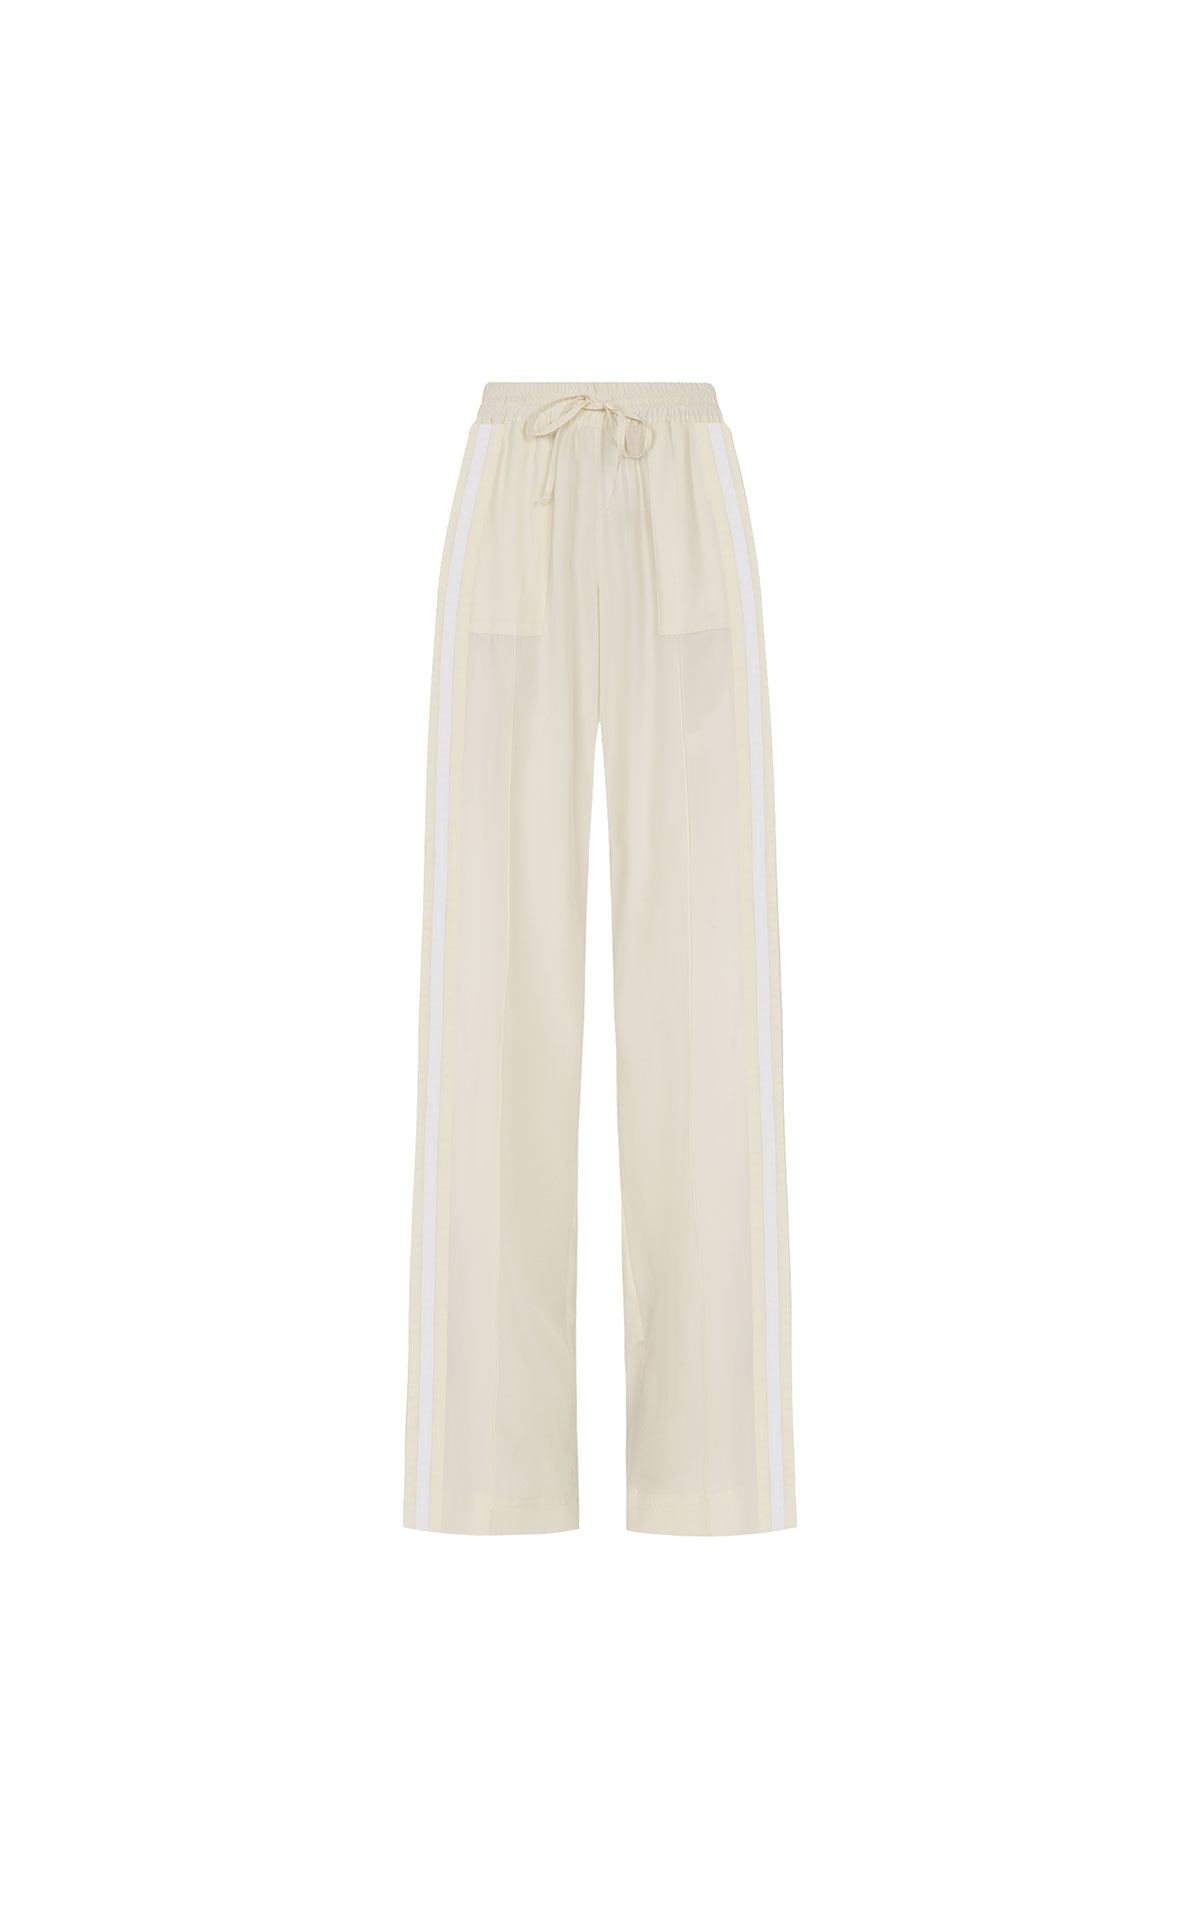 Barefoot Chic Serena Bute Classic jogger ivory from Bicester Village